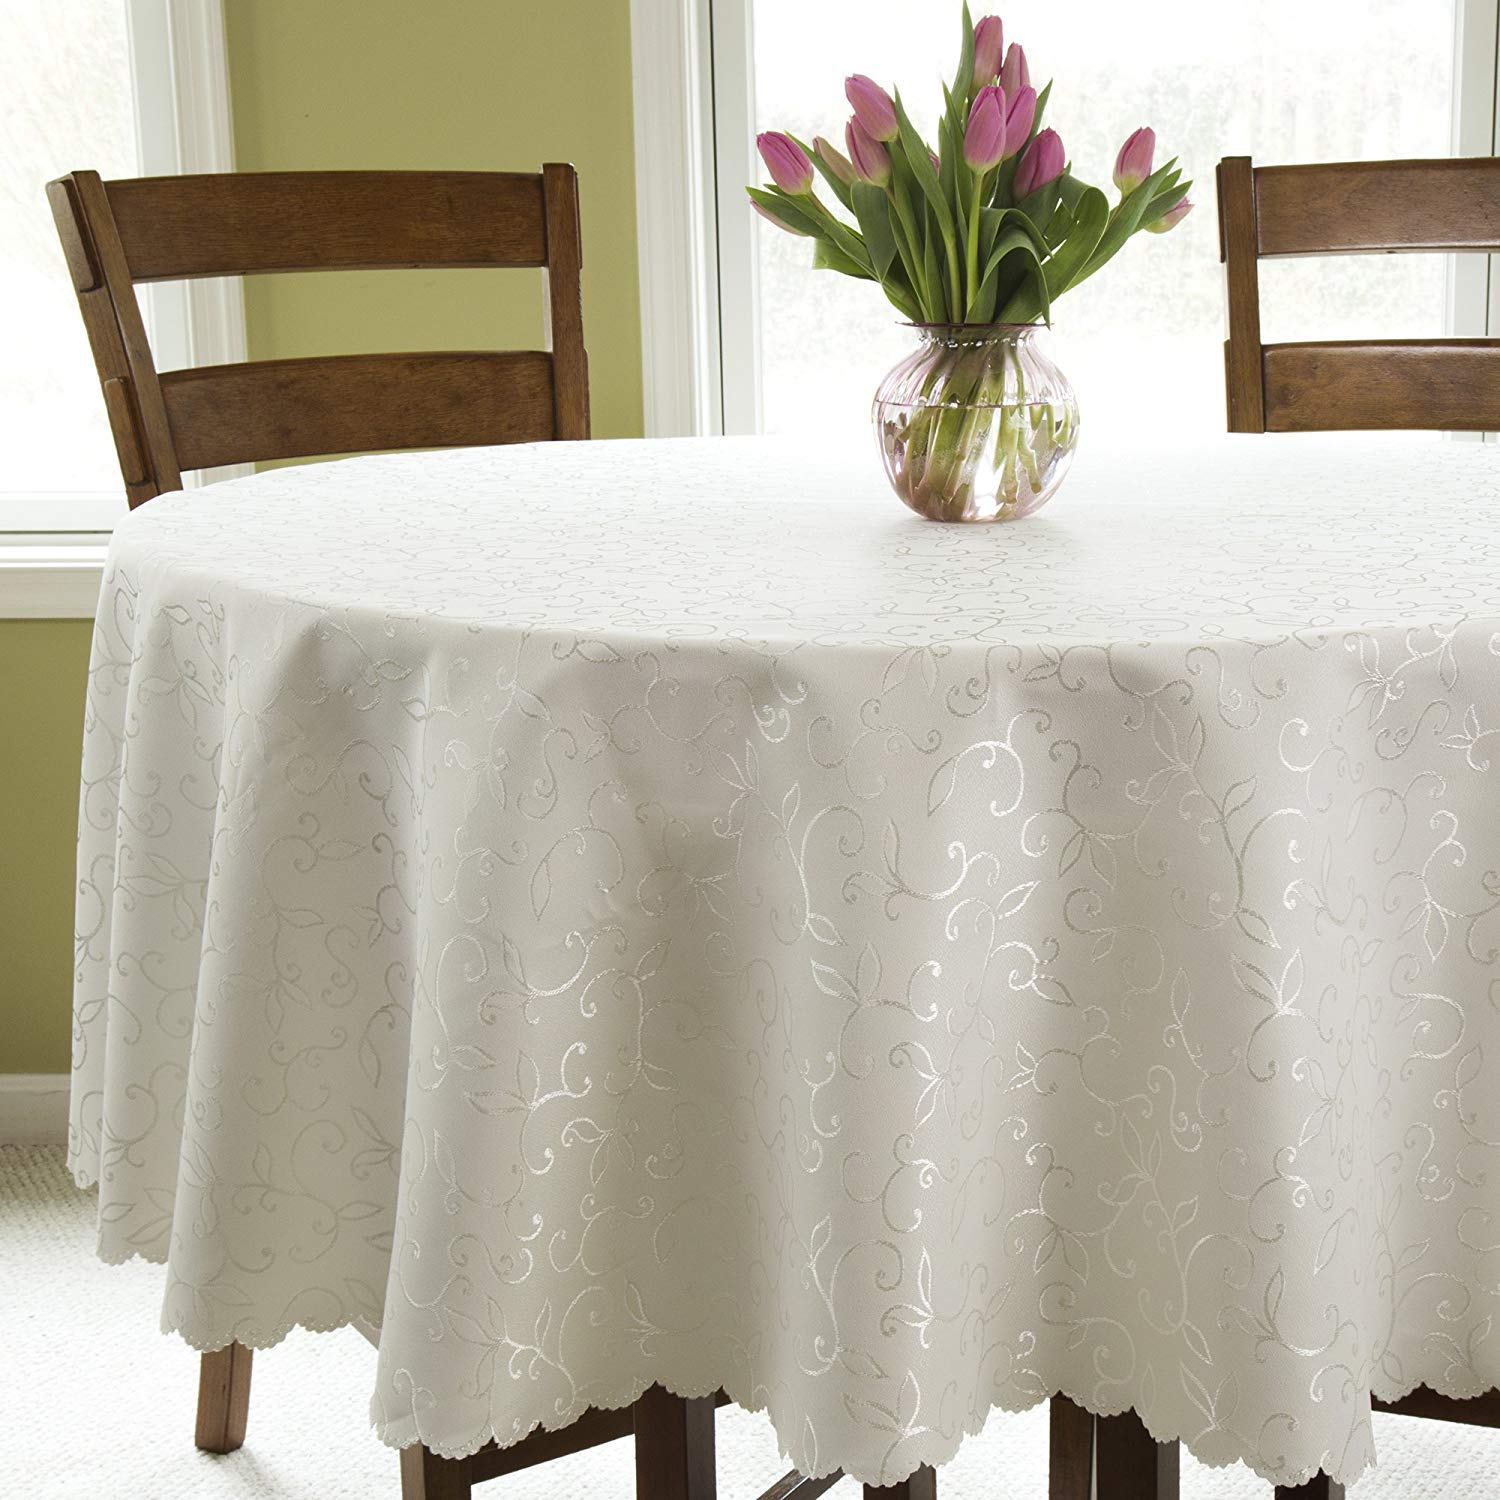 """Turkish Round Tablecloth Polyester Table Cover - Stain Resistant Wrinkle free Non-Iron Dust-proof Oblong Square Round – Table linen for Wedding Christmas New Year eve Dinner Gift (IVORY, Round 50"""")"""